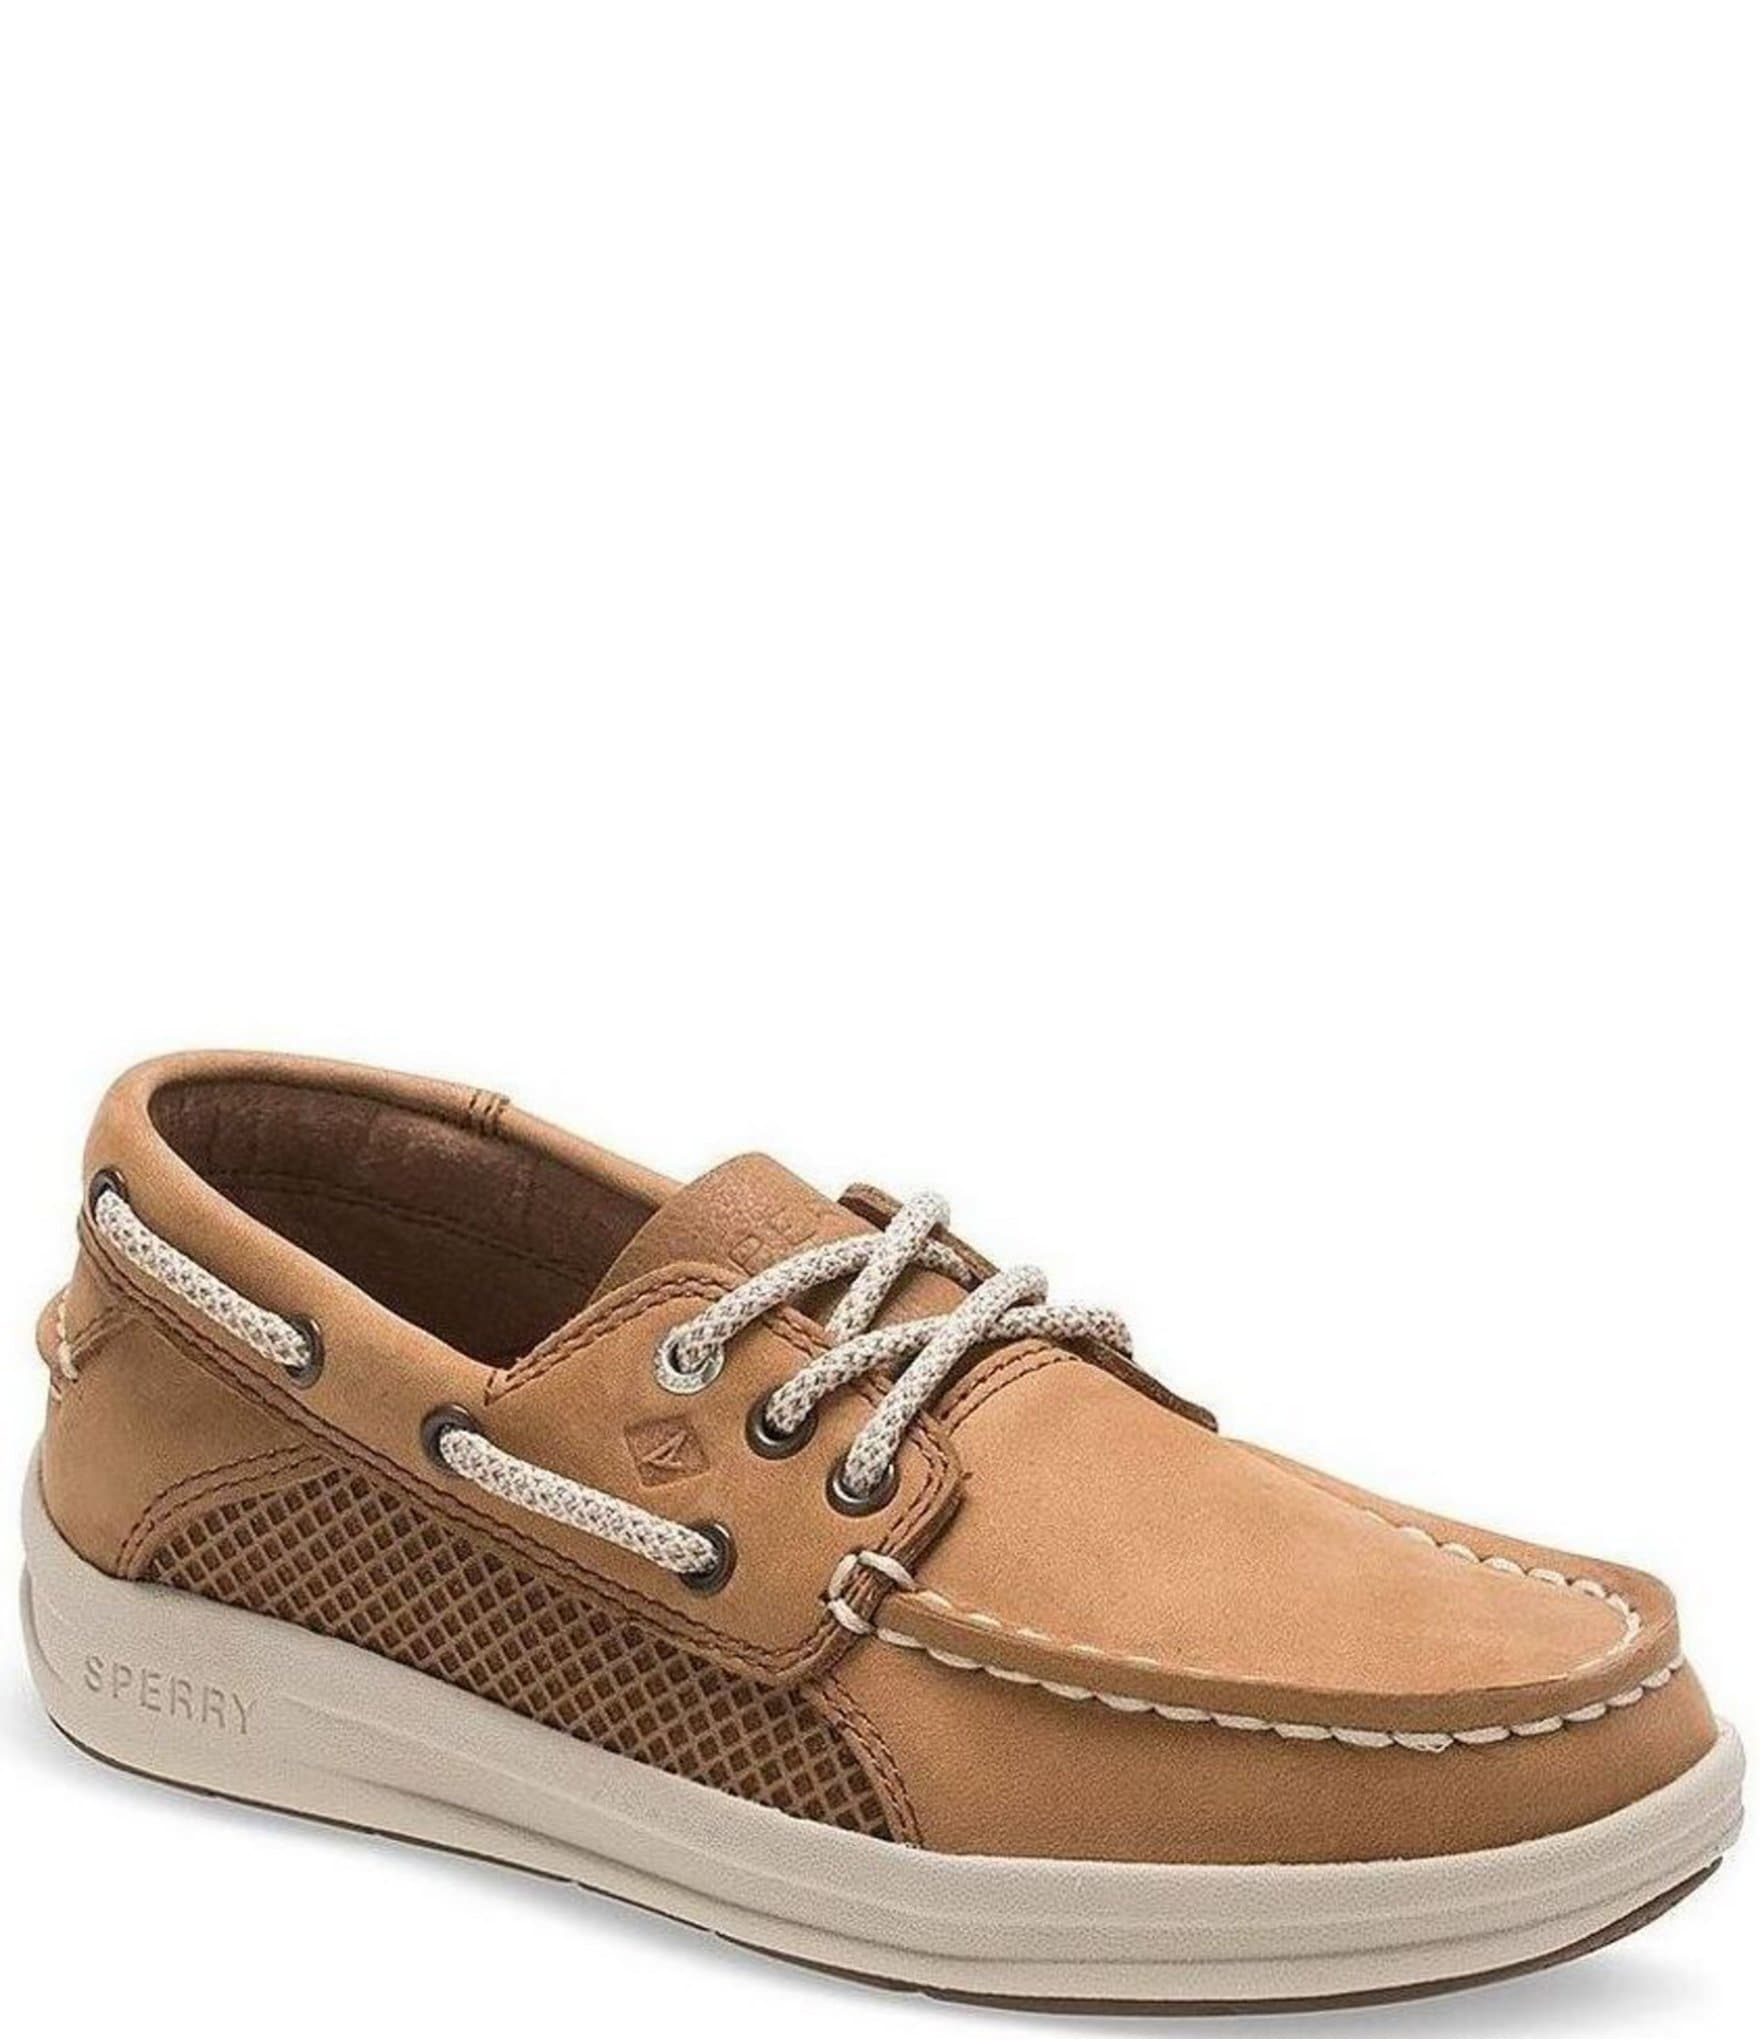 Sperry Boys' Gamefish Leather Boat Shoes (Youth) | Dillard's